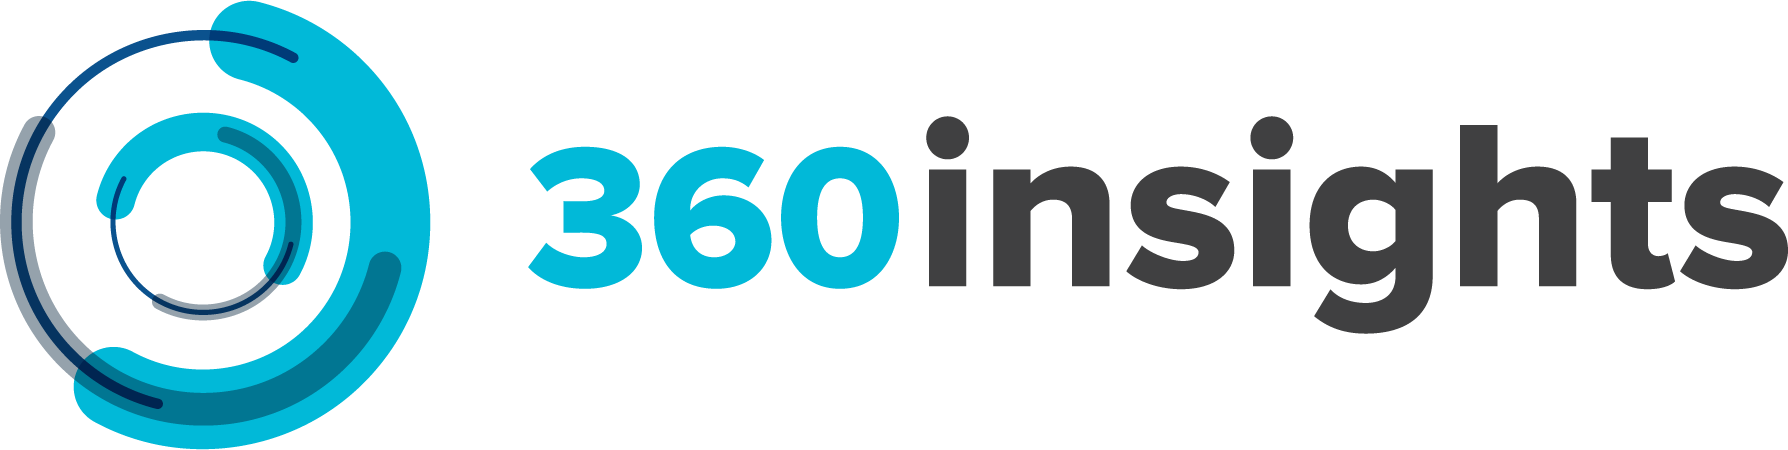 360insights Logo